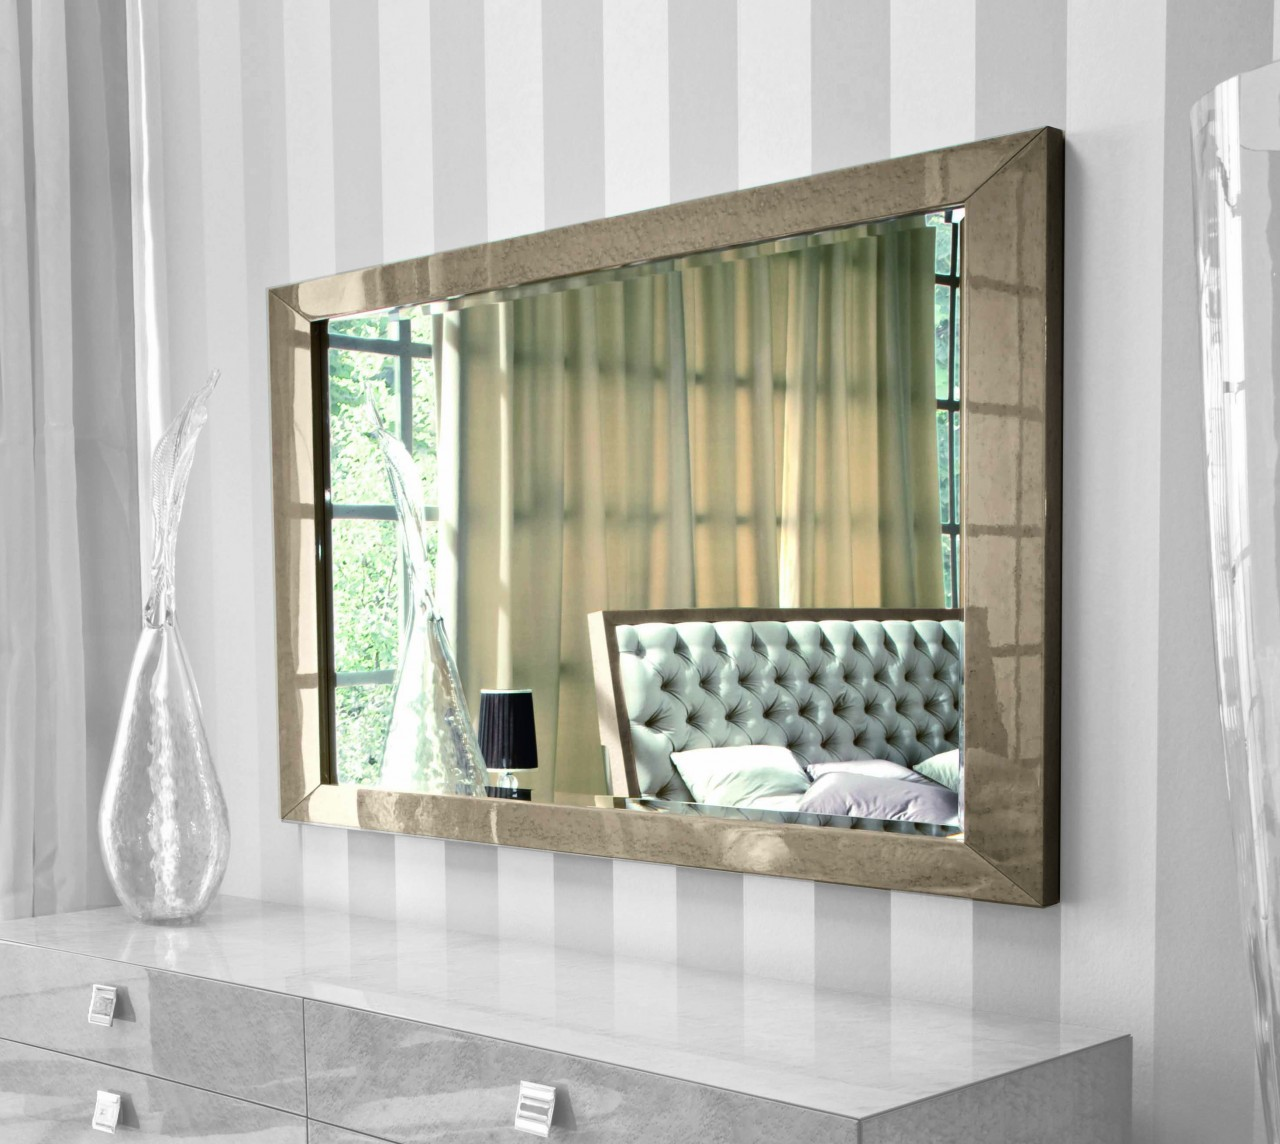 Sunrise bedroom wall mirror 360 giorgio sunrise bedroom wall mirror 360 amipublicfo Images